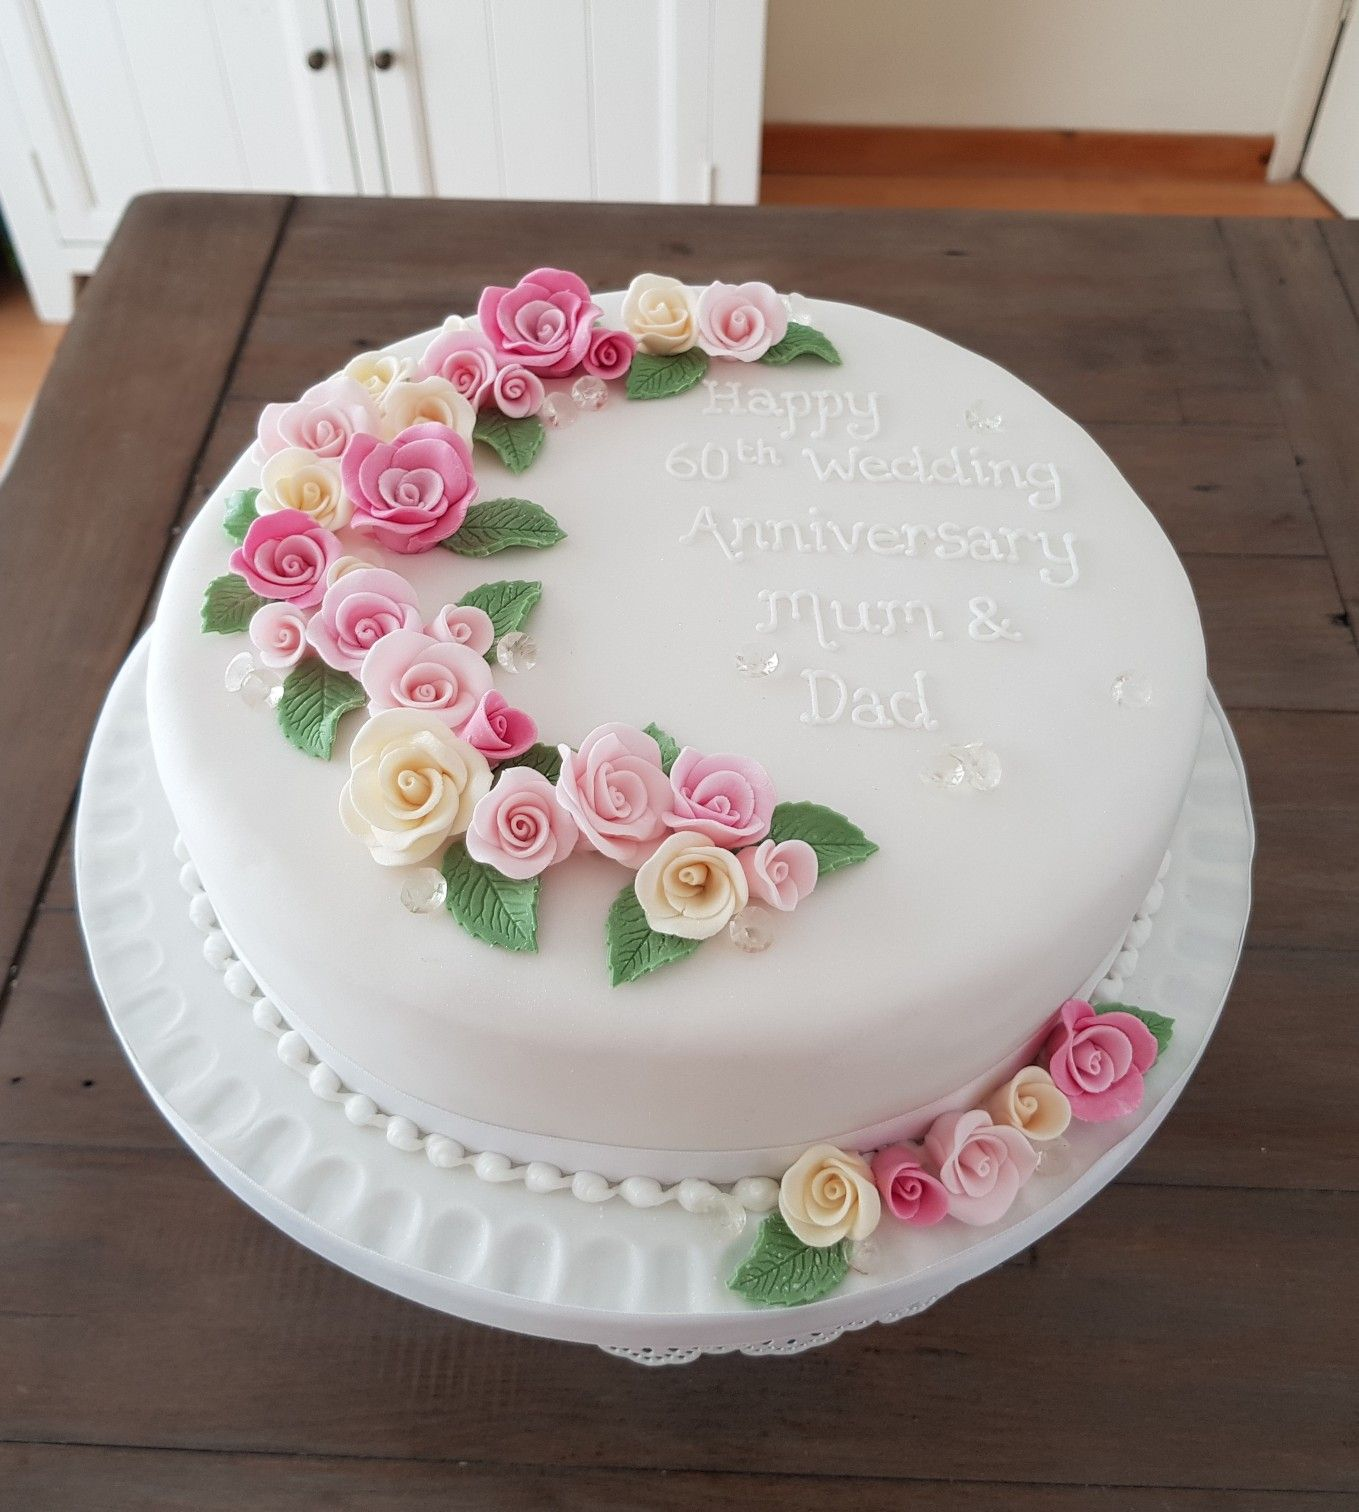 For a diamond wedding anniversary made by kimus cake gallery in